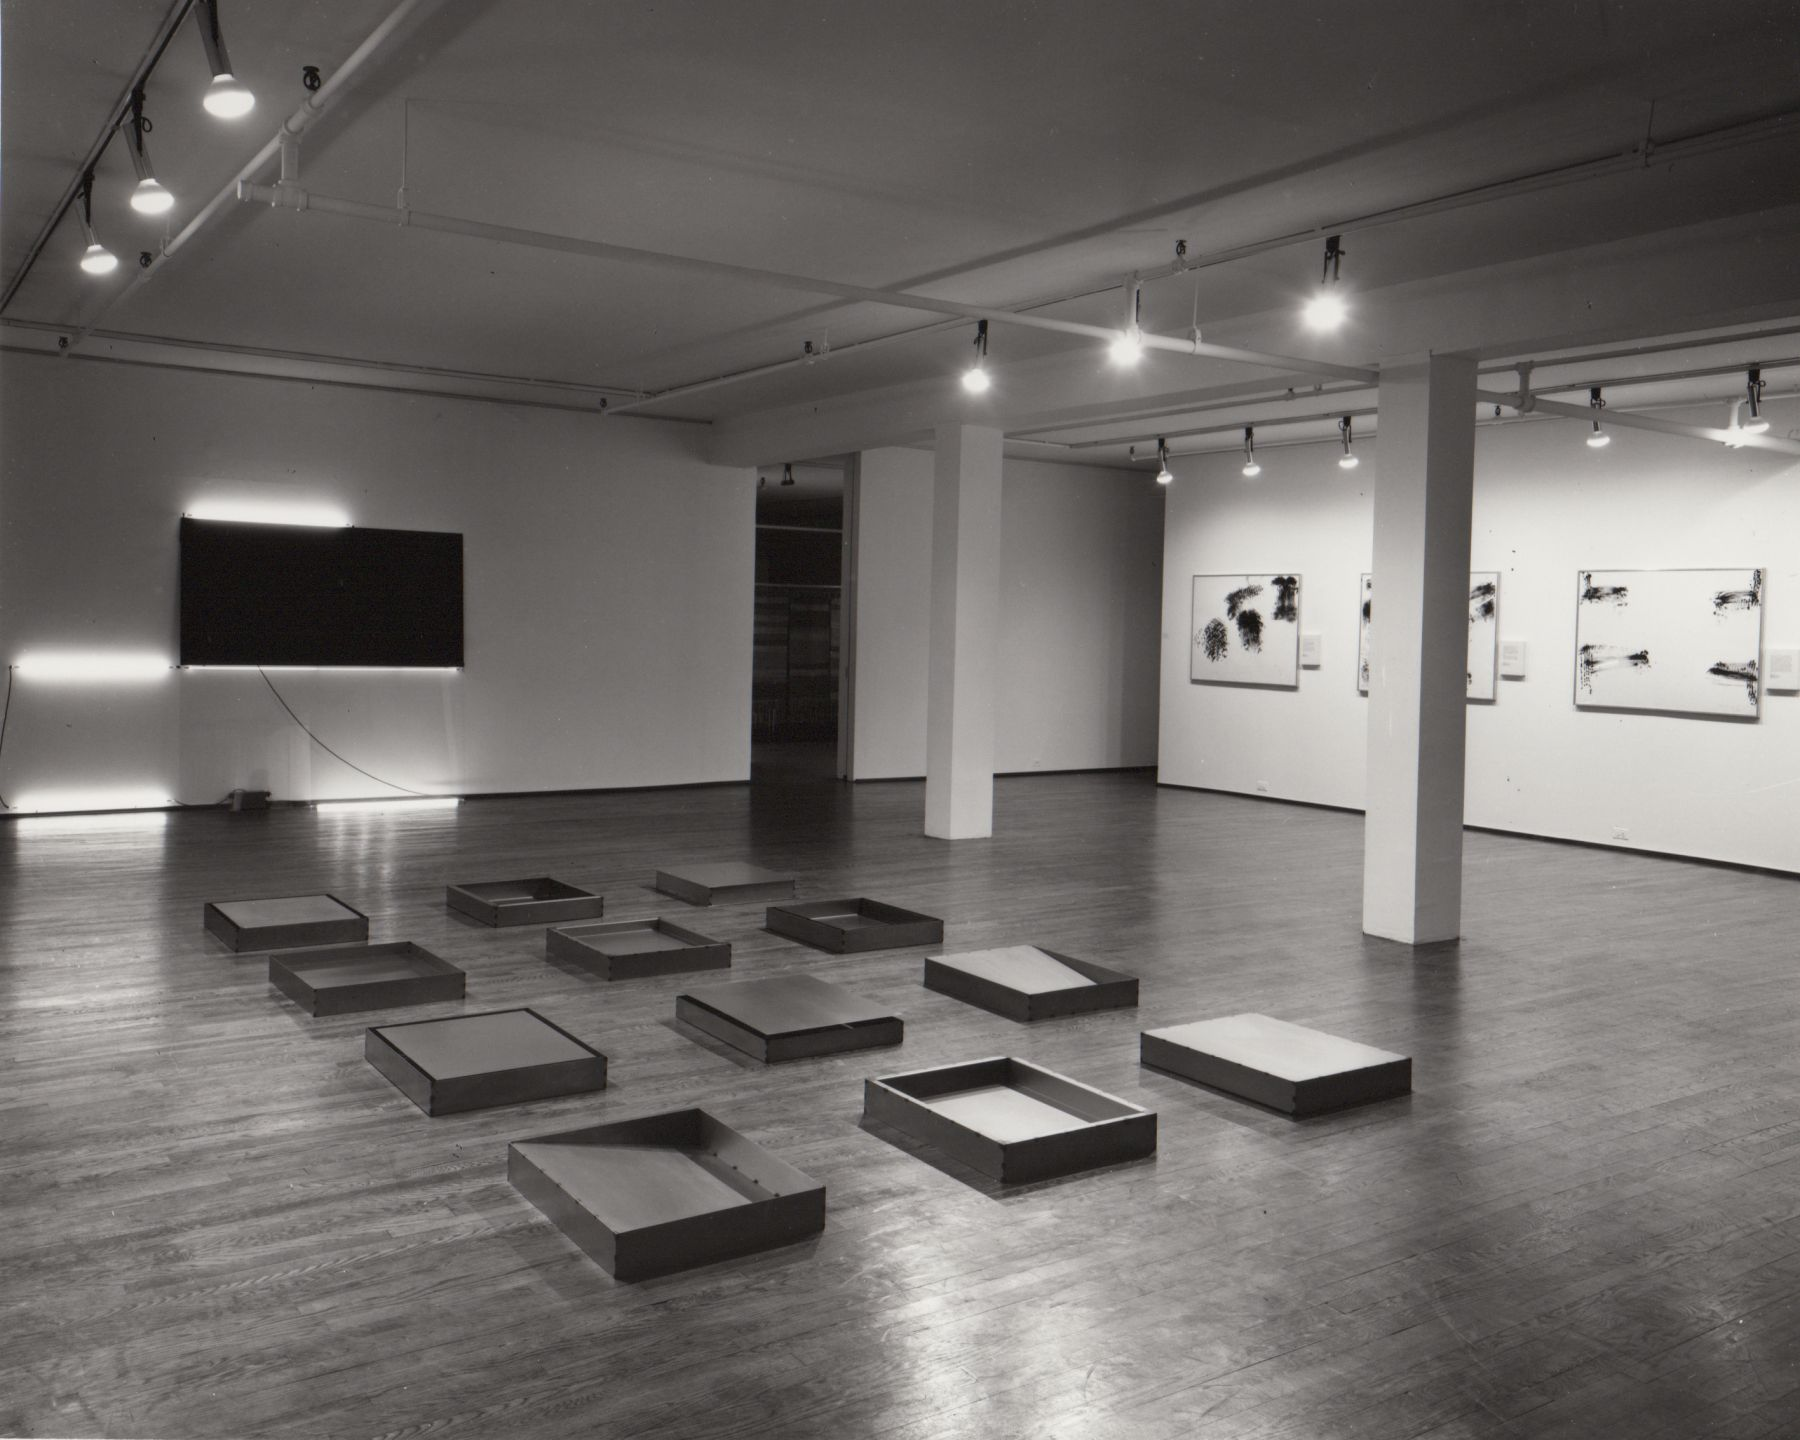 Installation view, Robert Barry, Donald Judd, Robert Morris, Keith Sonnier, 420 WEST BROADWAY.